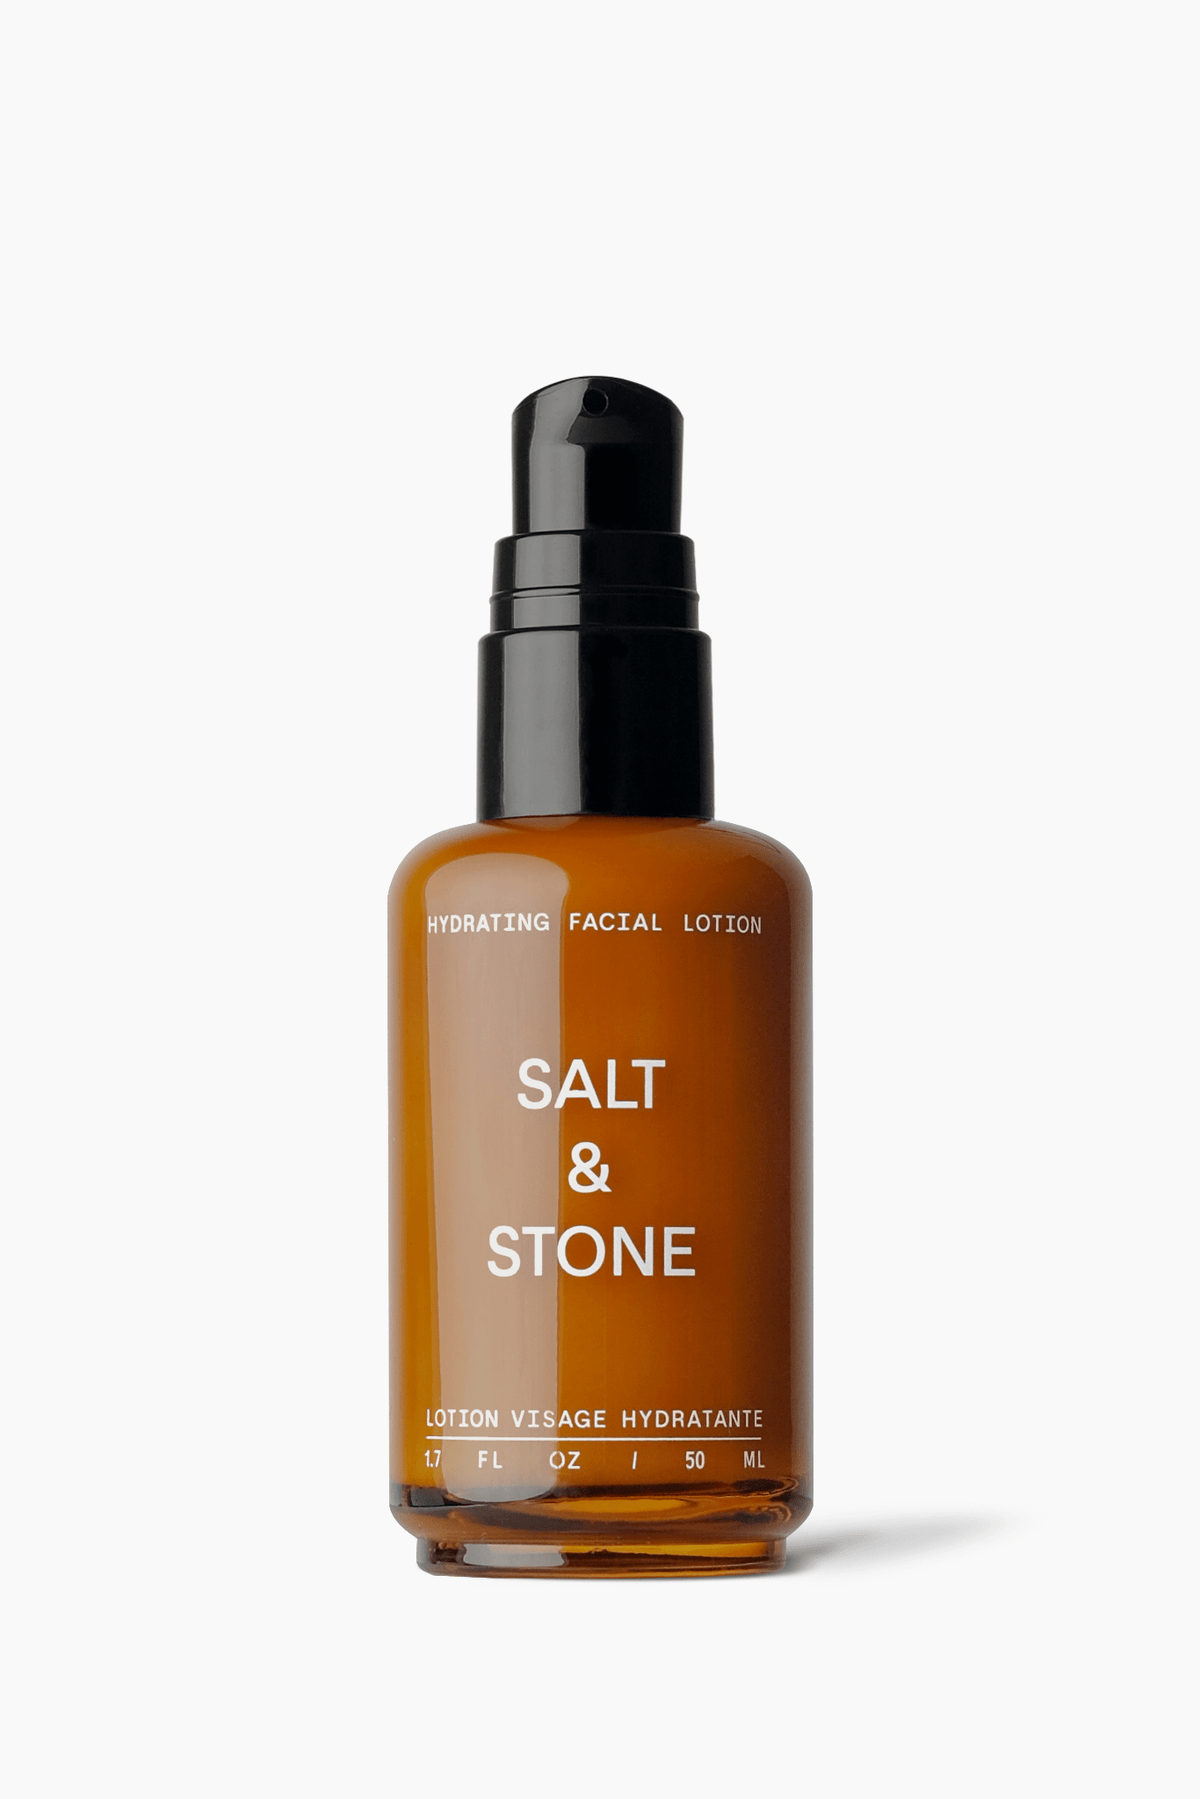 SALT & STONE Hydrating facial lotion - 50ml